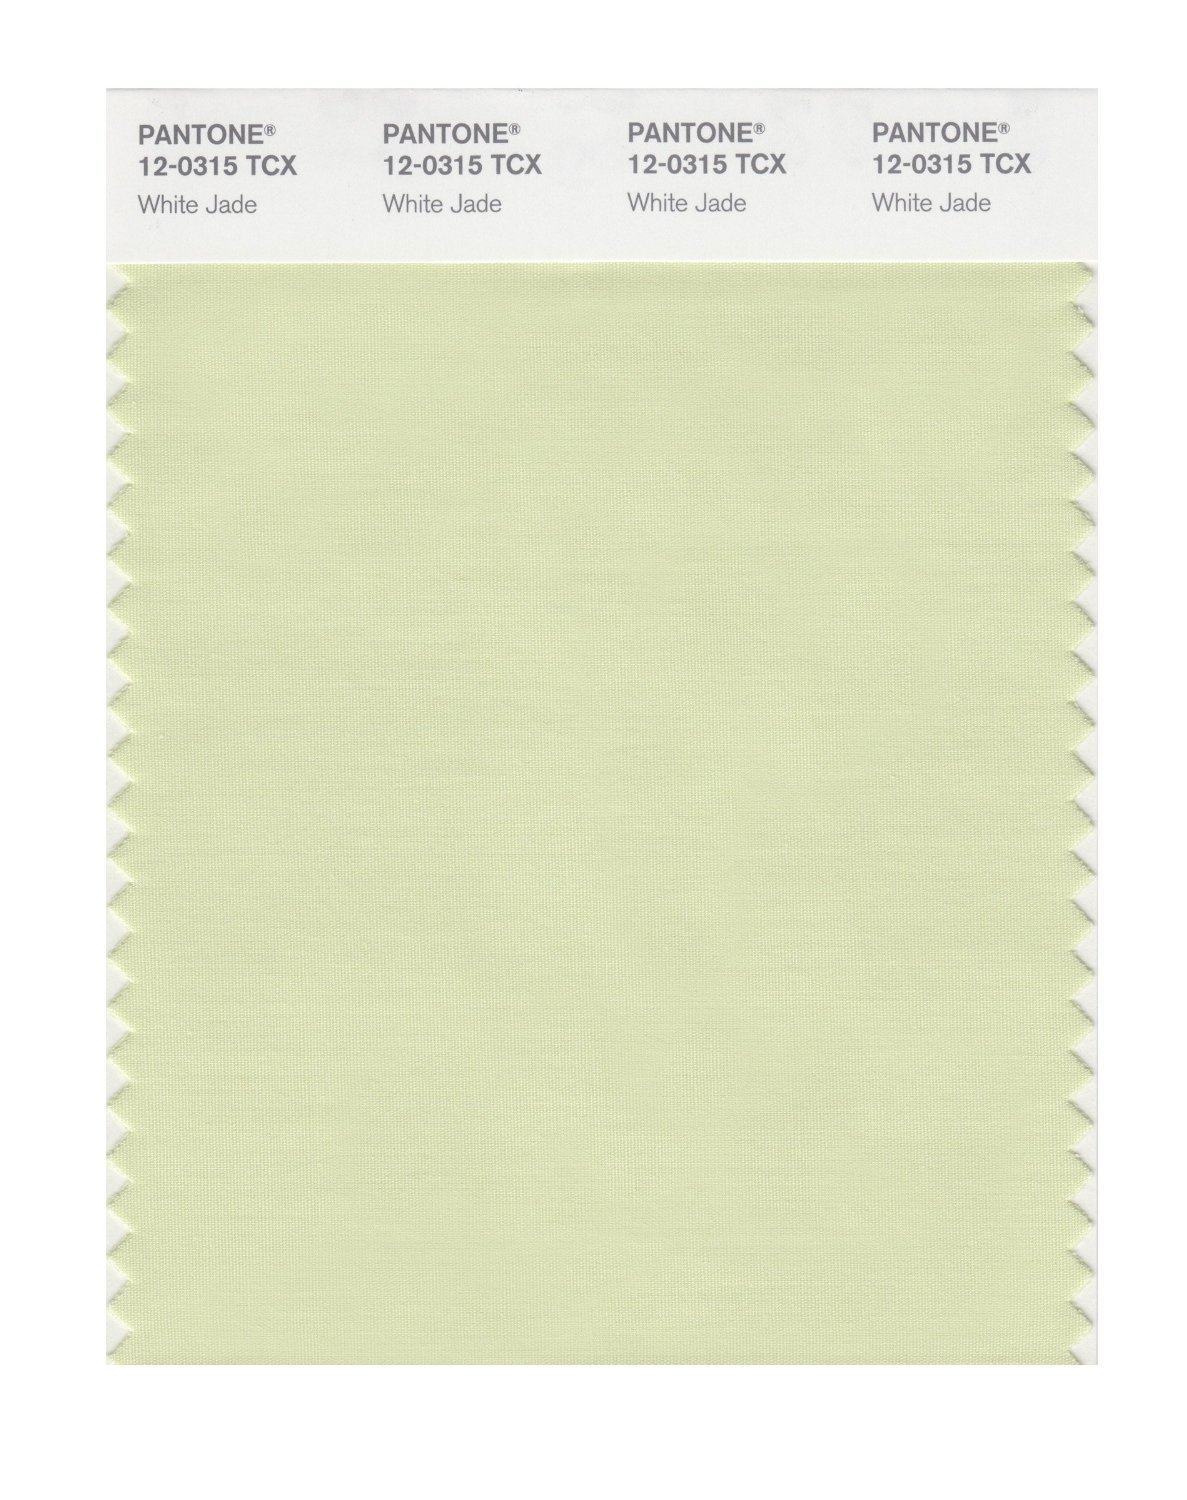 Pantone Smart Swatch 12-0315 White Jade